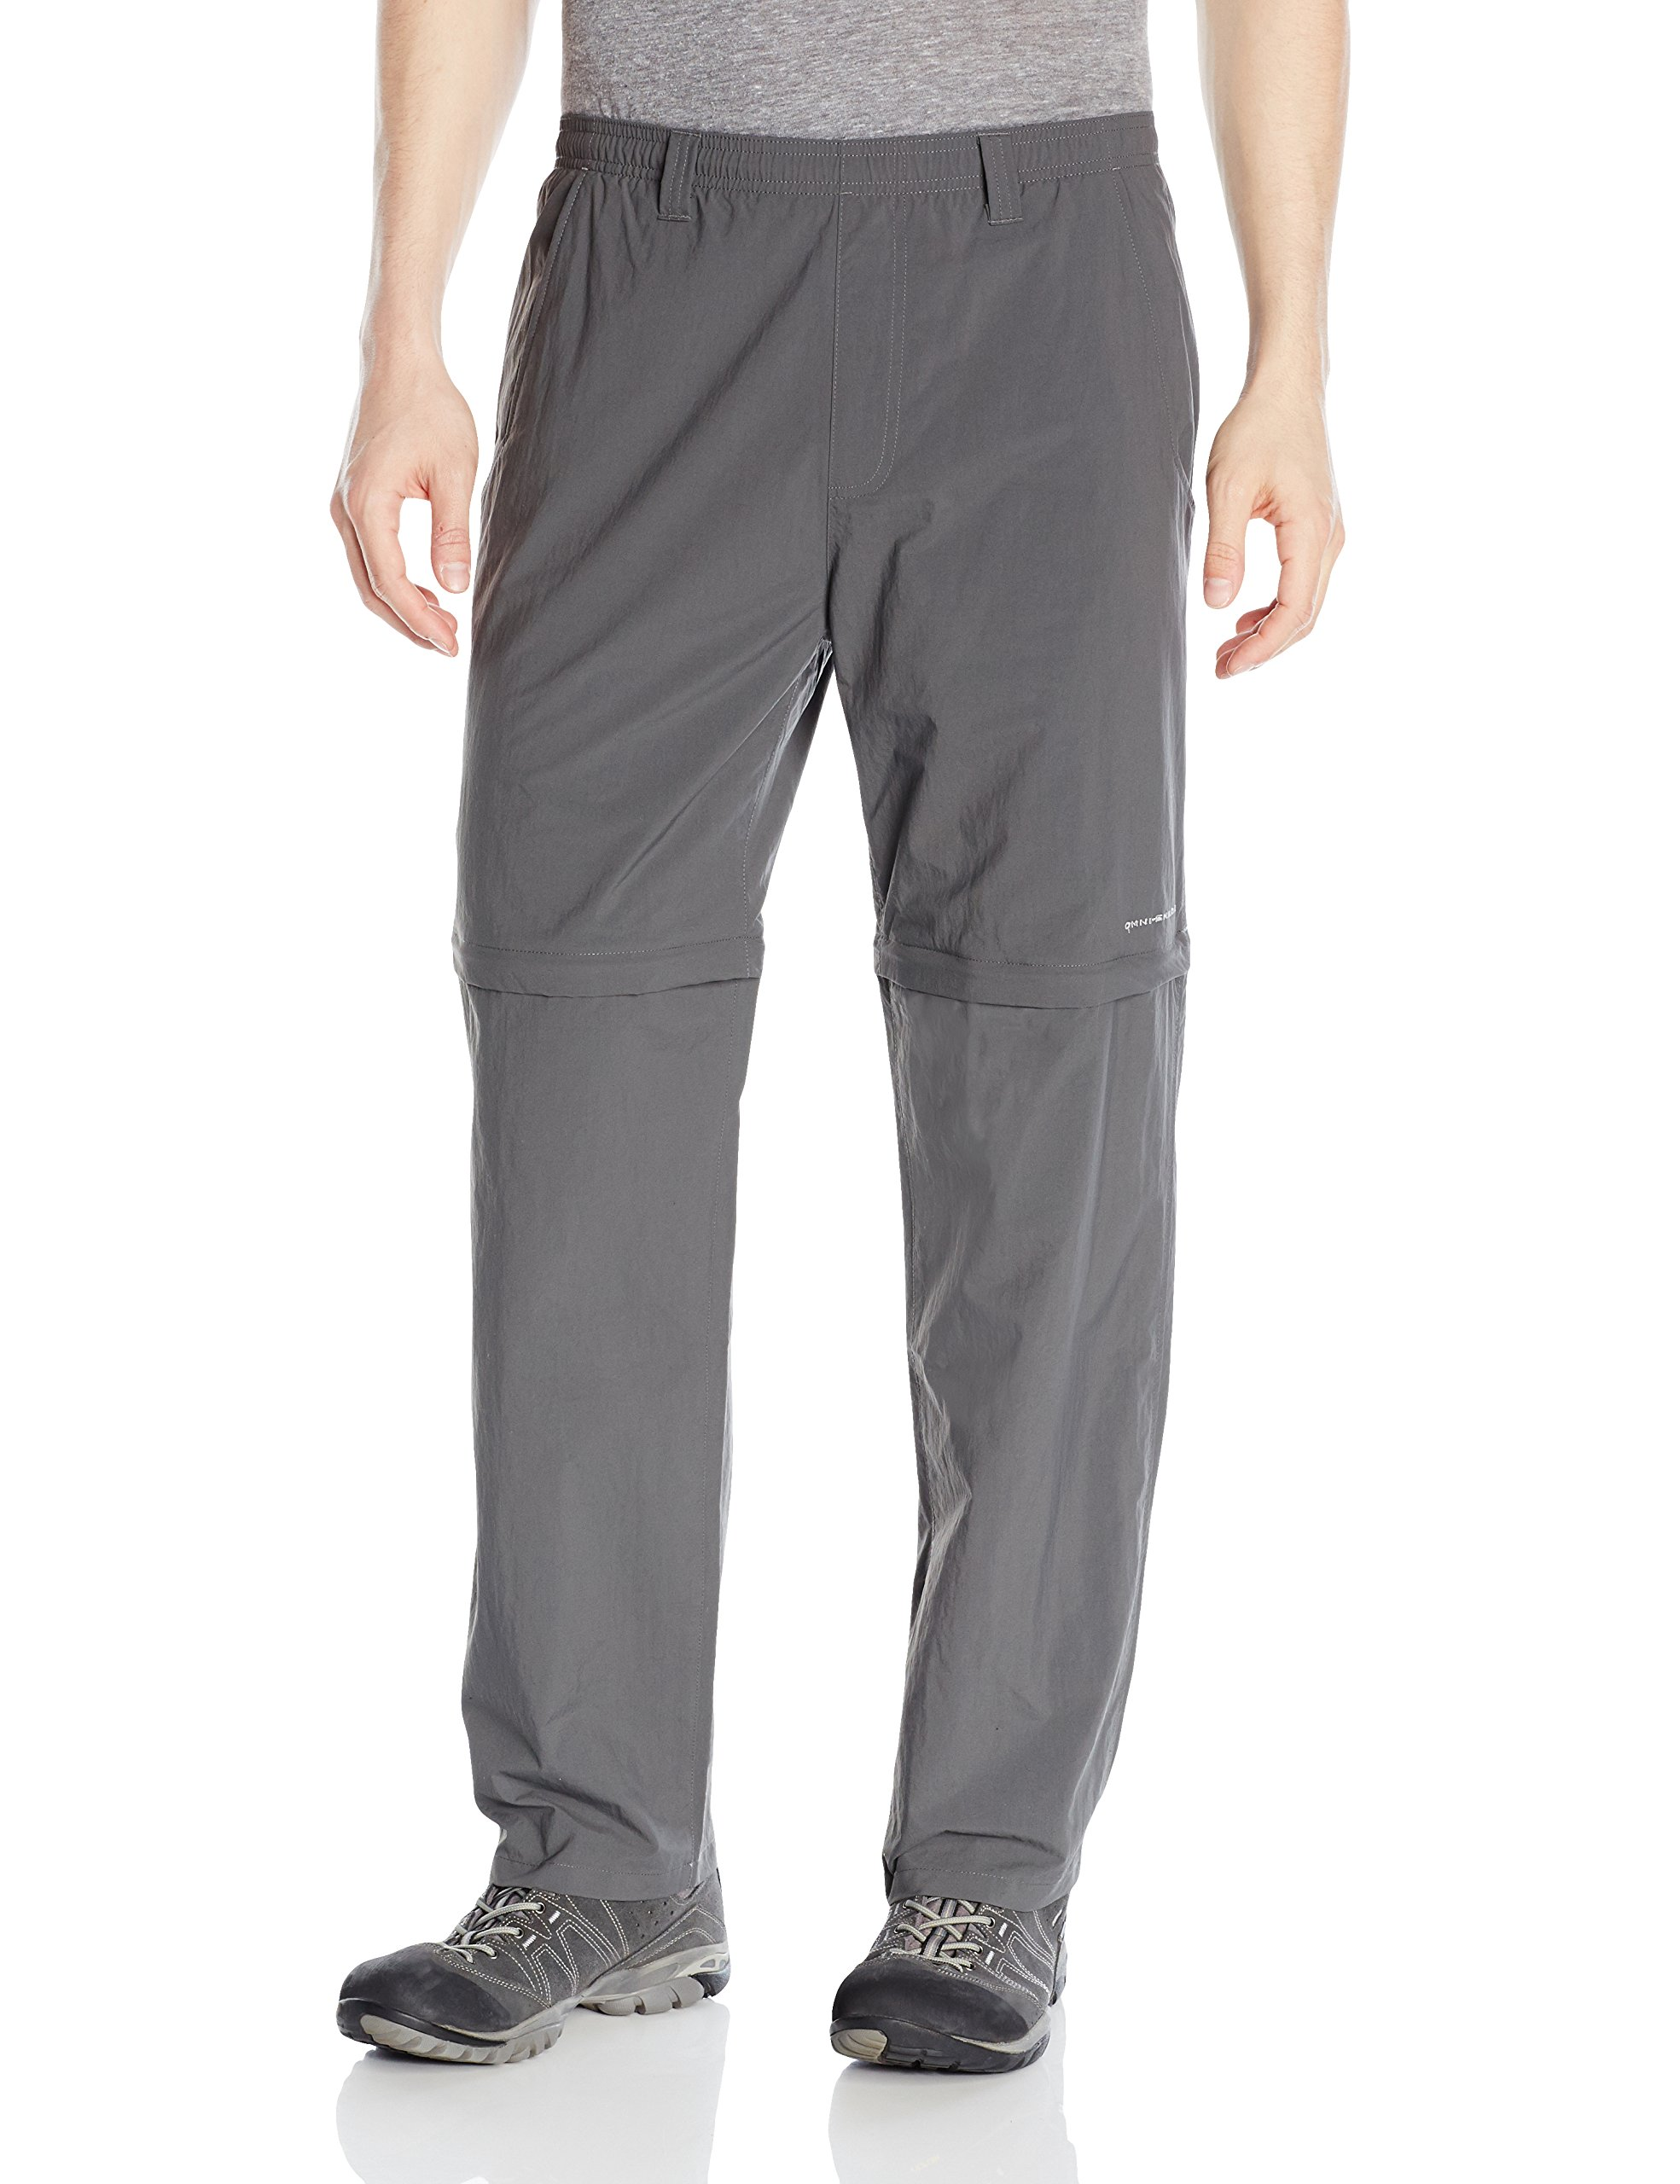 Columbia Men's Backcast Convertible Pants, Small x Size 30, Grill